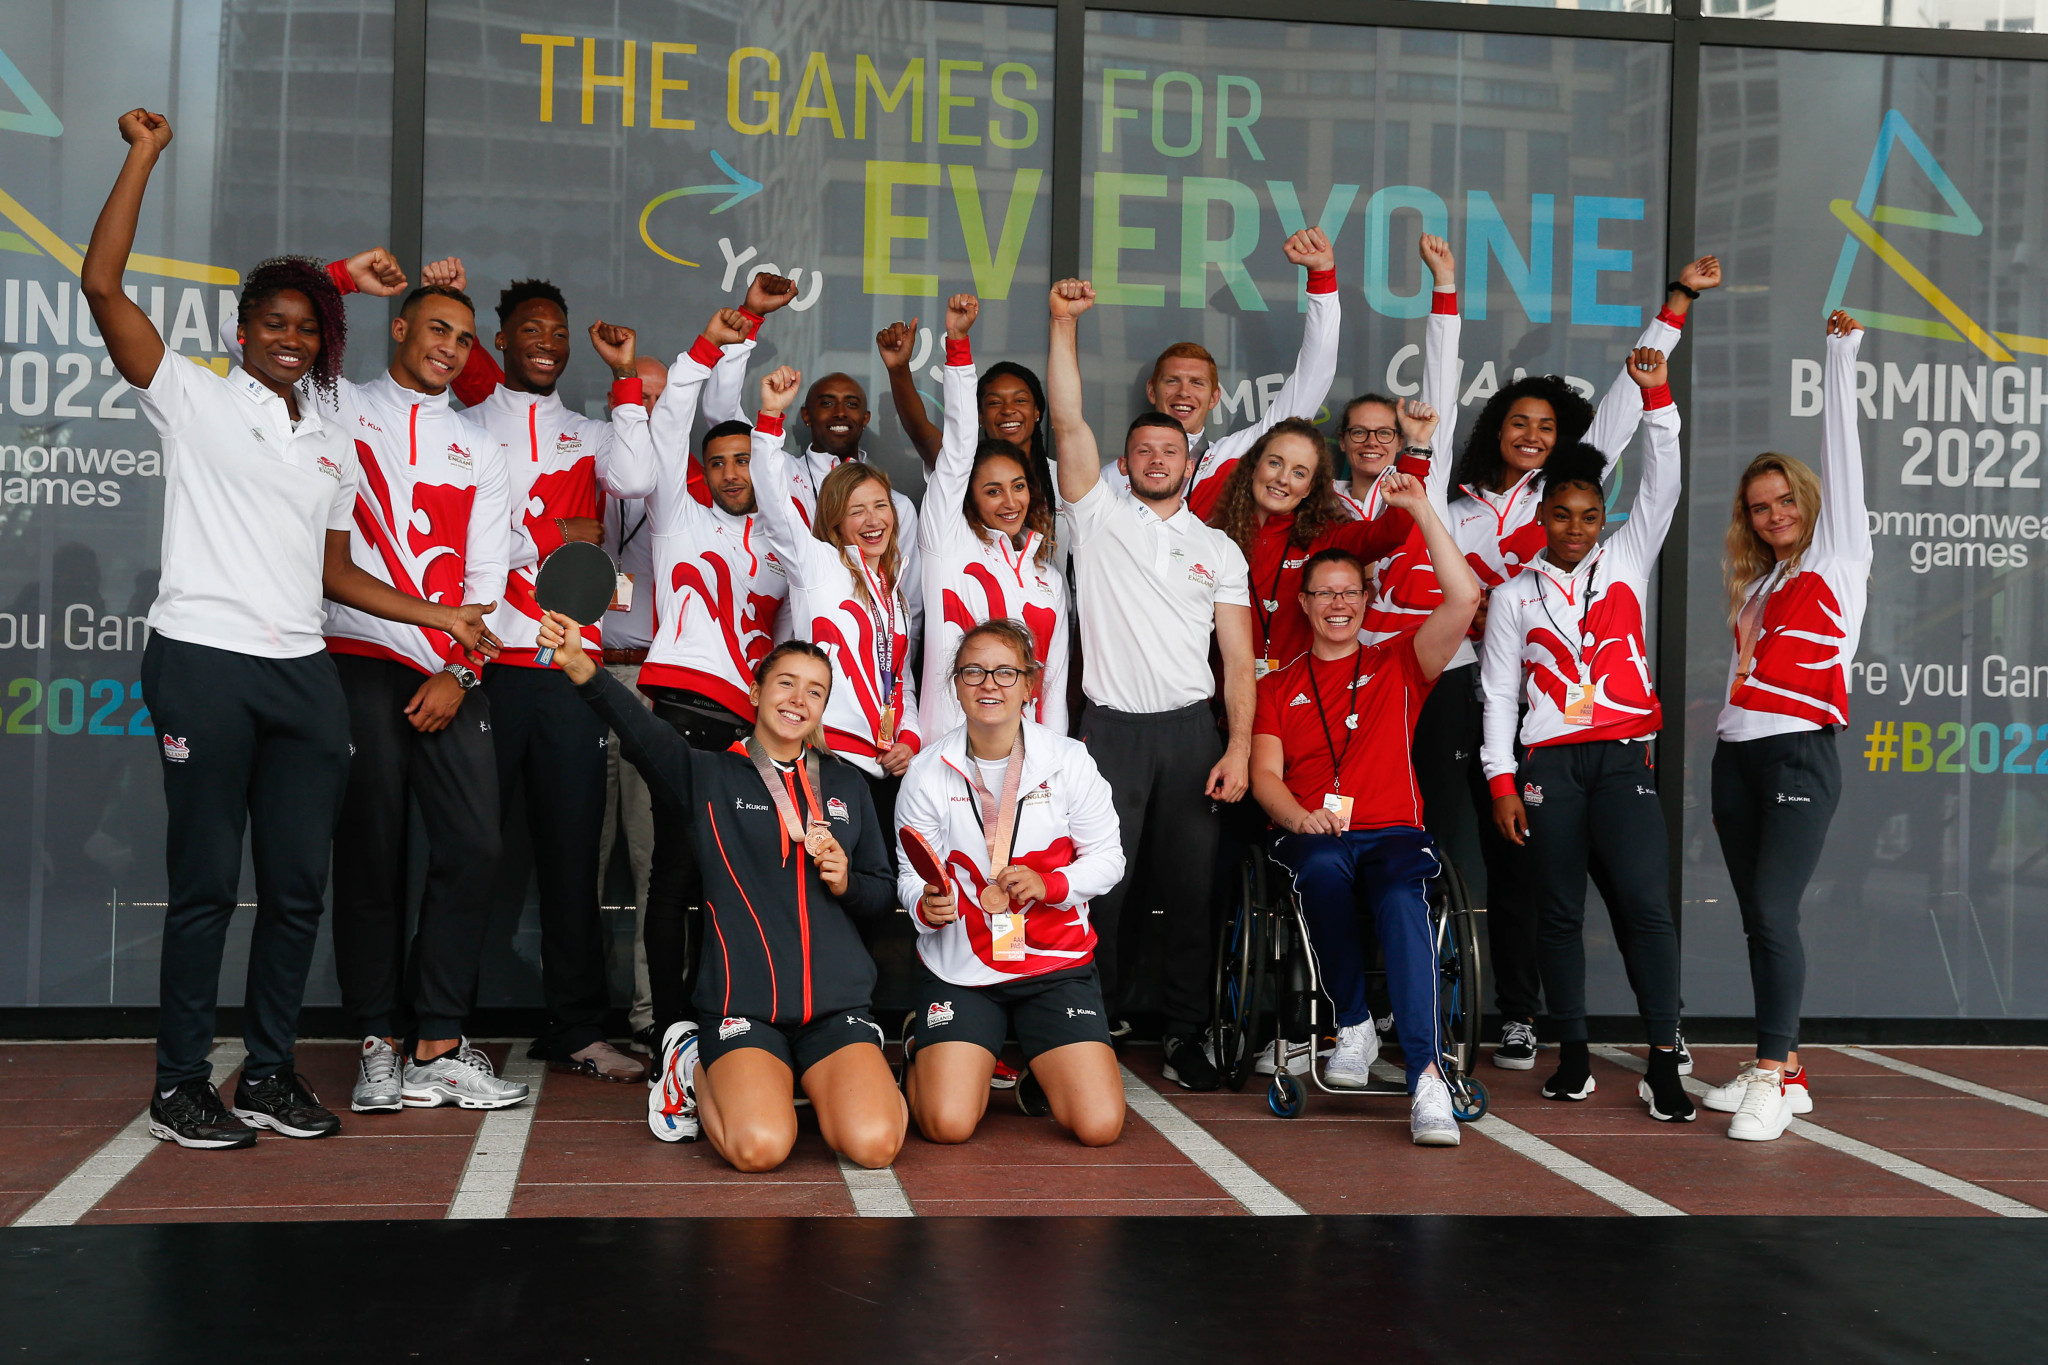 Birmingham could host the new event as part of the legacy of the Commonwealth Games ©Getty Images